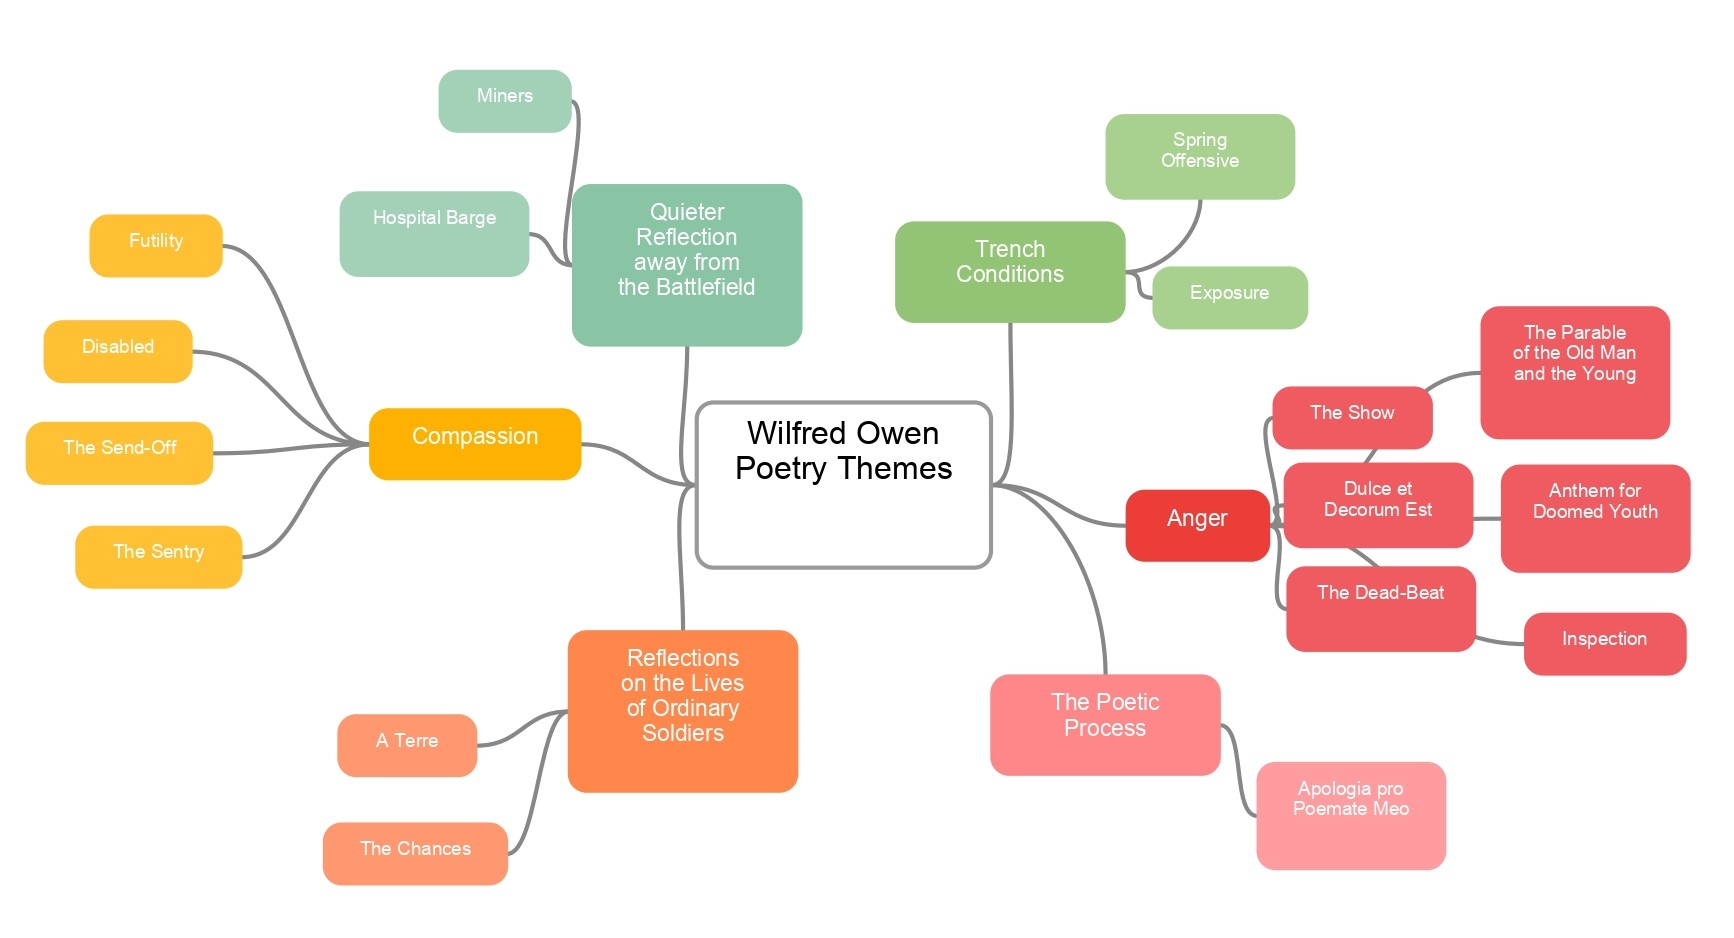 mappa concettuale visual map Inglese  Wilfred Owen poetry themes